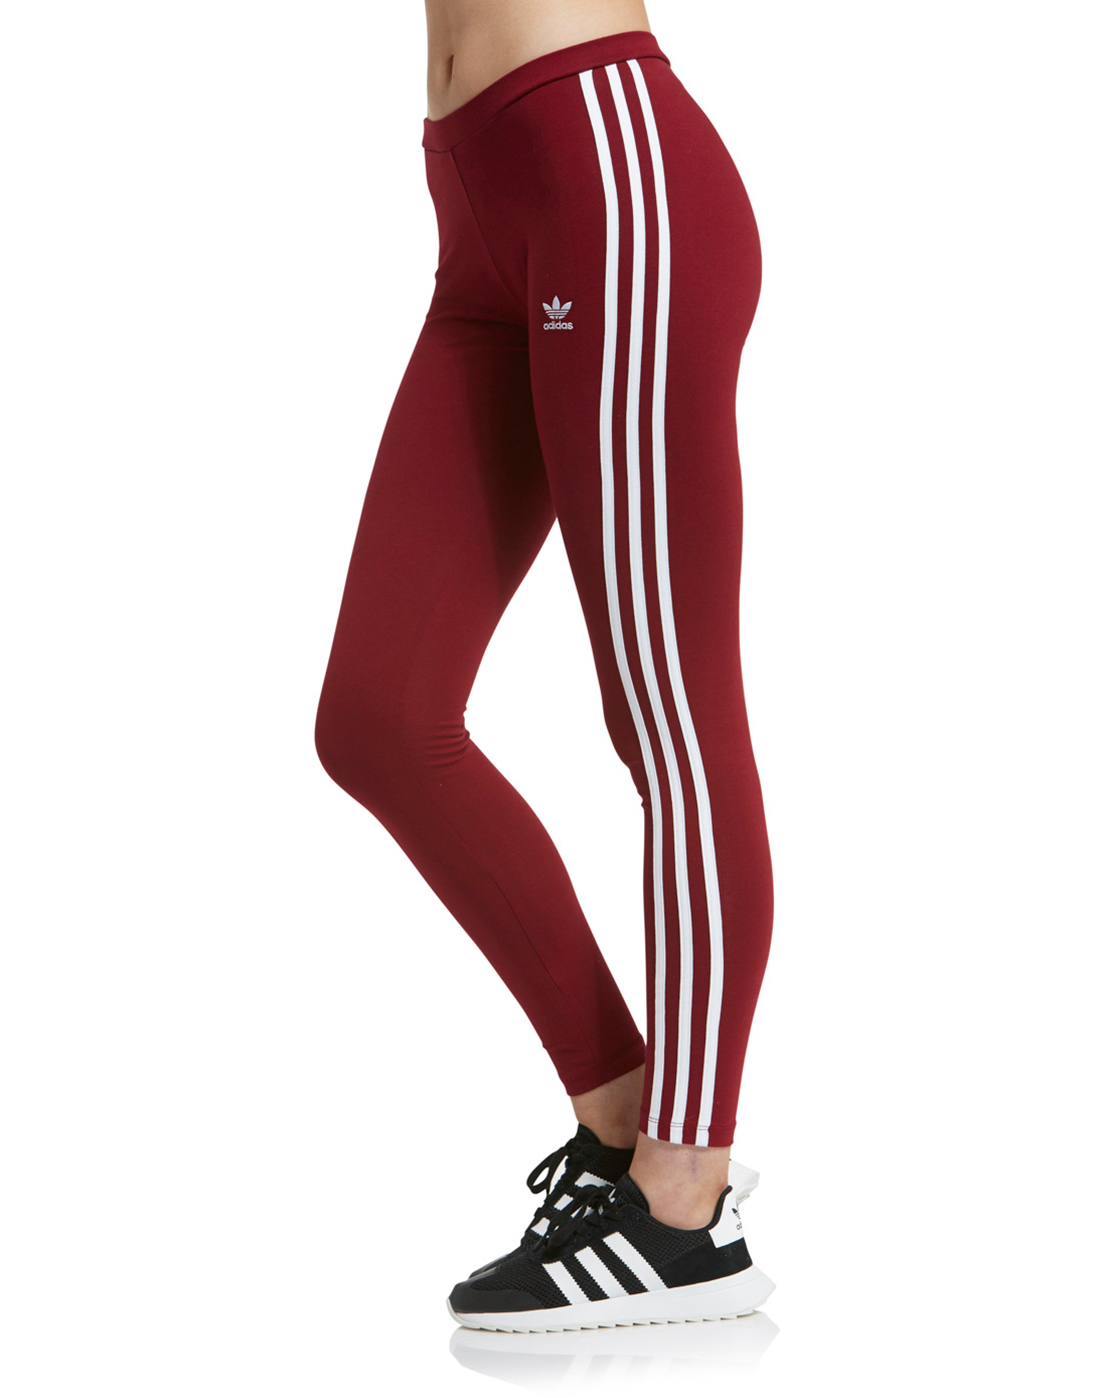 jurado templar Moderar  adidas Originals Womens 3 Stripe Legging - Burgundy | Life Style Sports IE